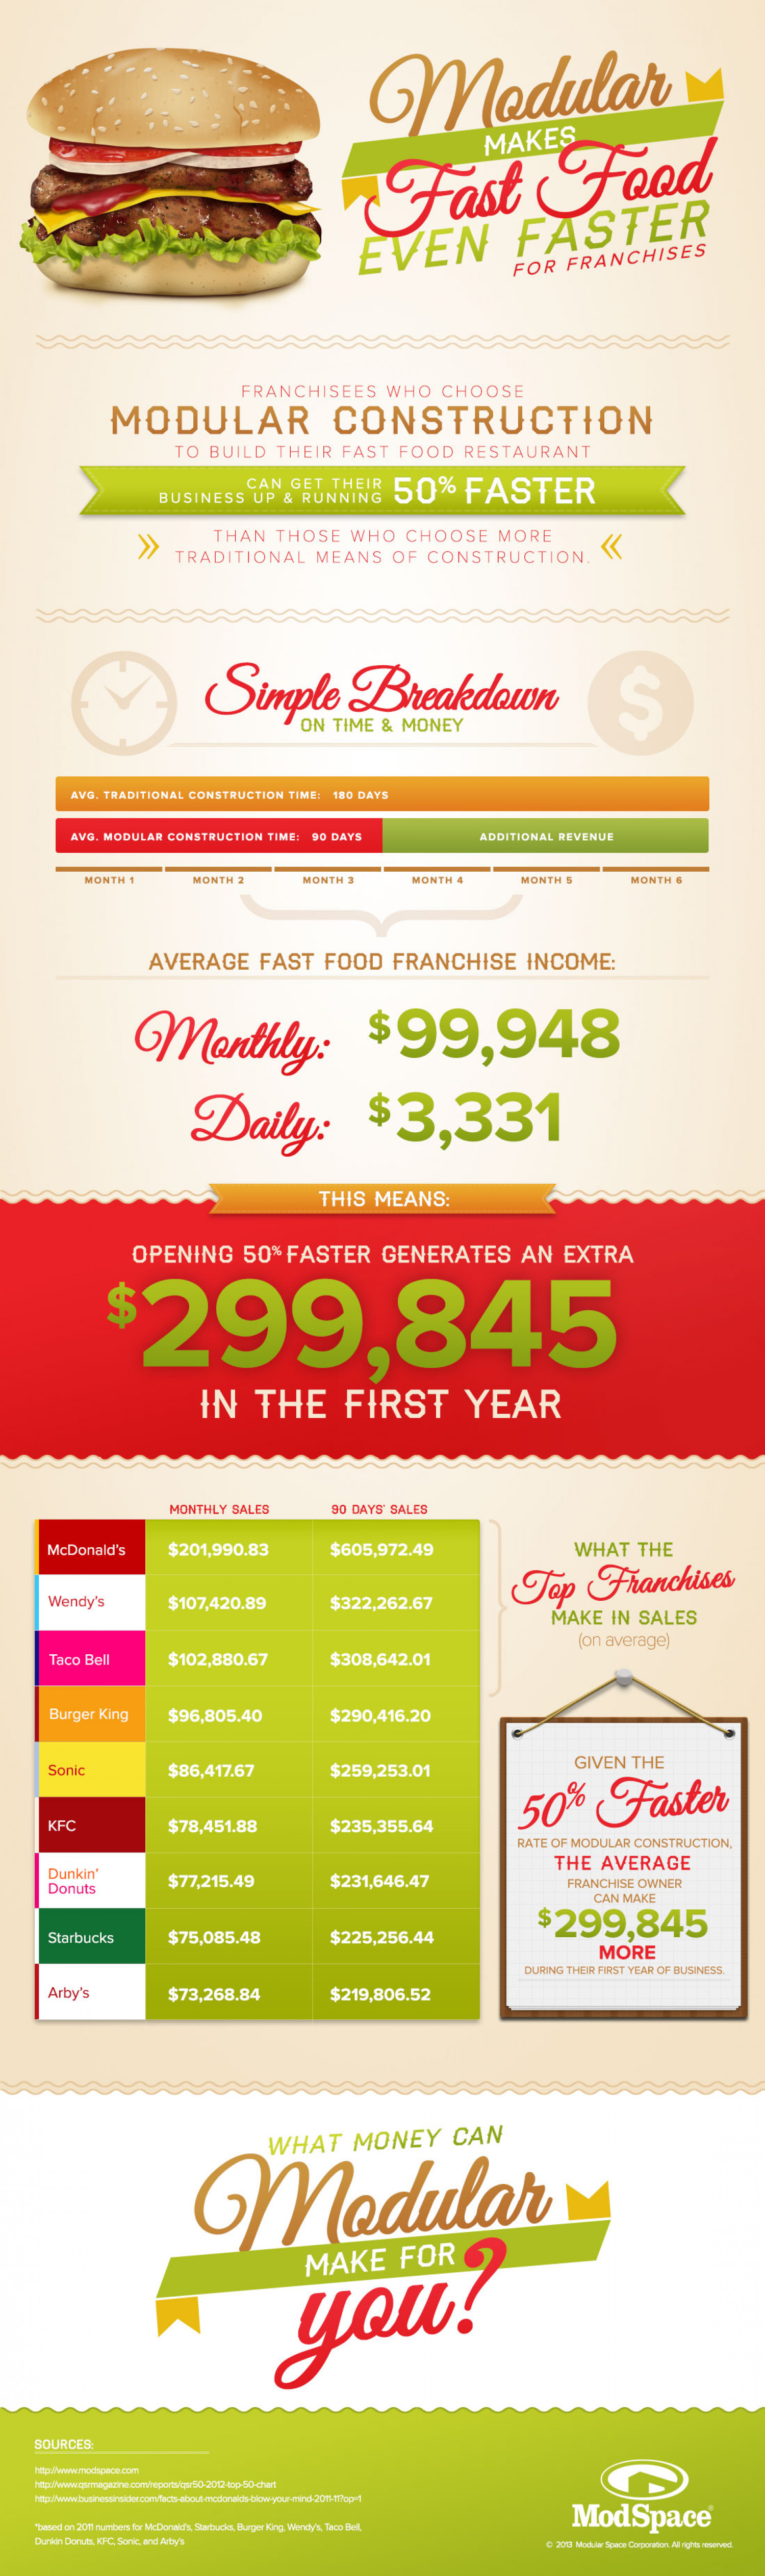 Modular Makes Fast Food Even Faster Infographic